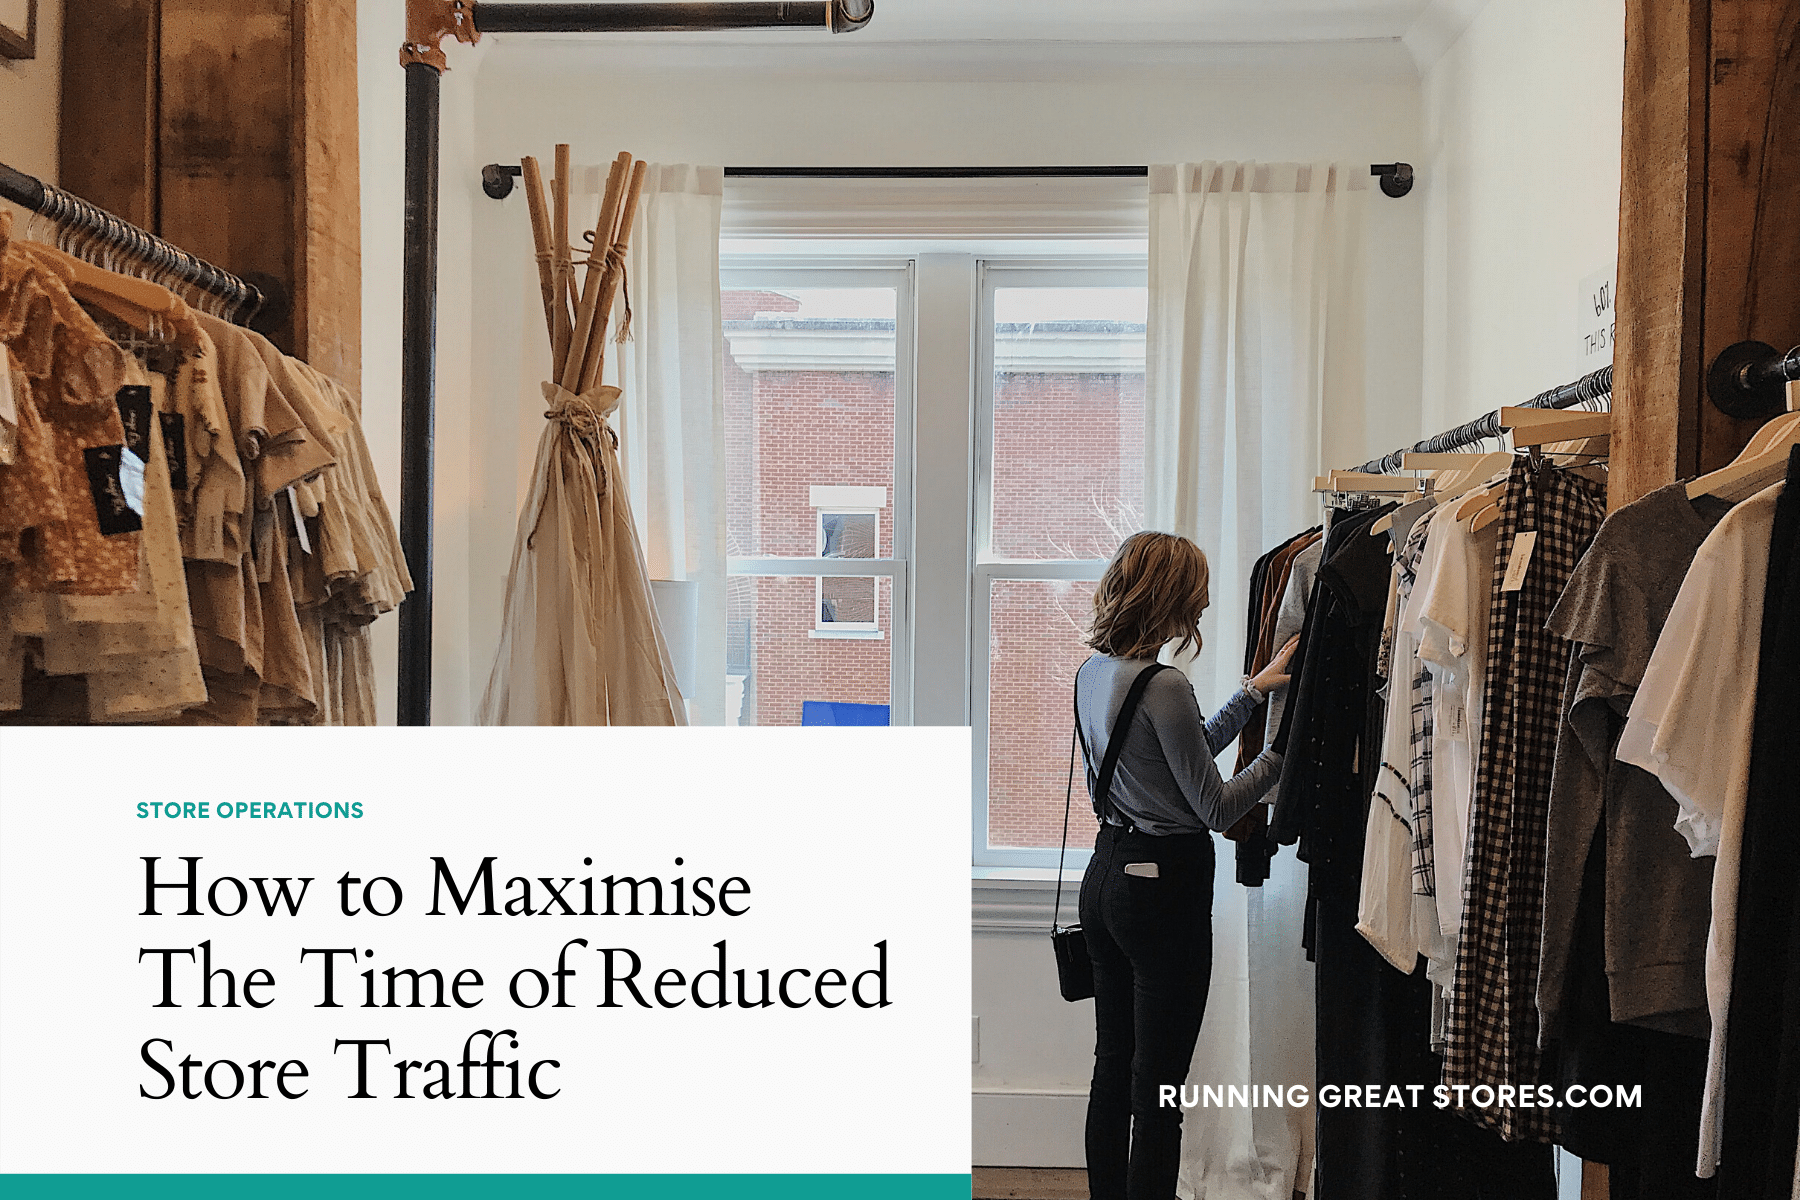 Maximize the time of reduced store traffic - Running Great Stores